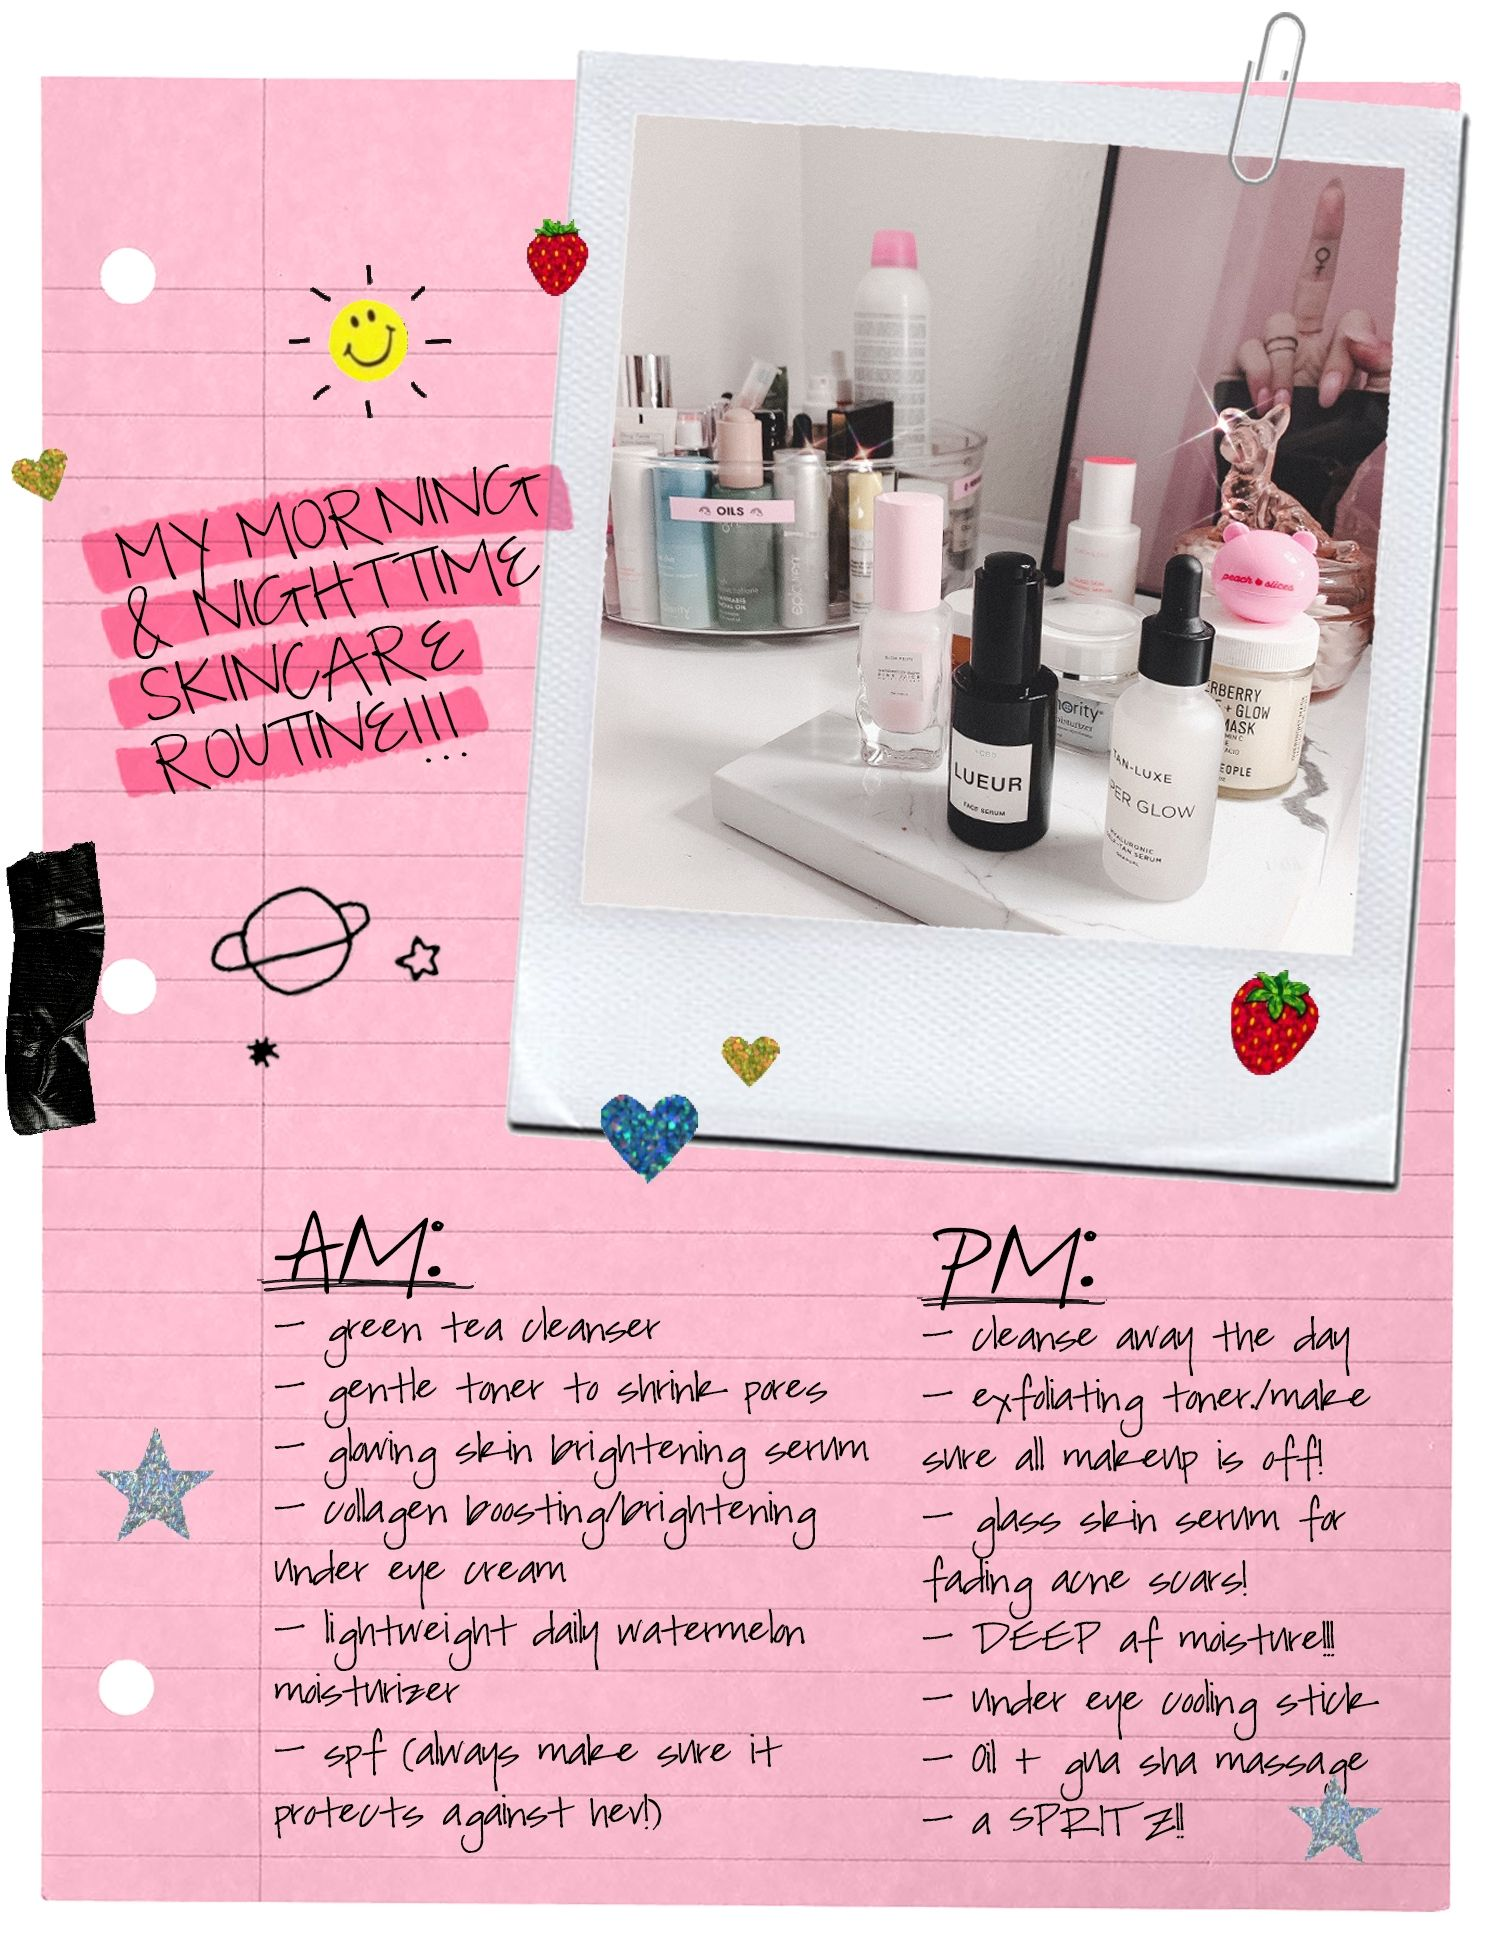 My Morning & Nighttime Skincare Routine for